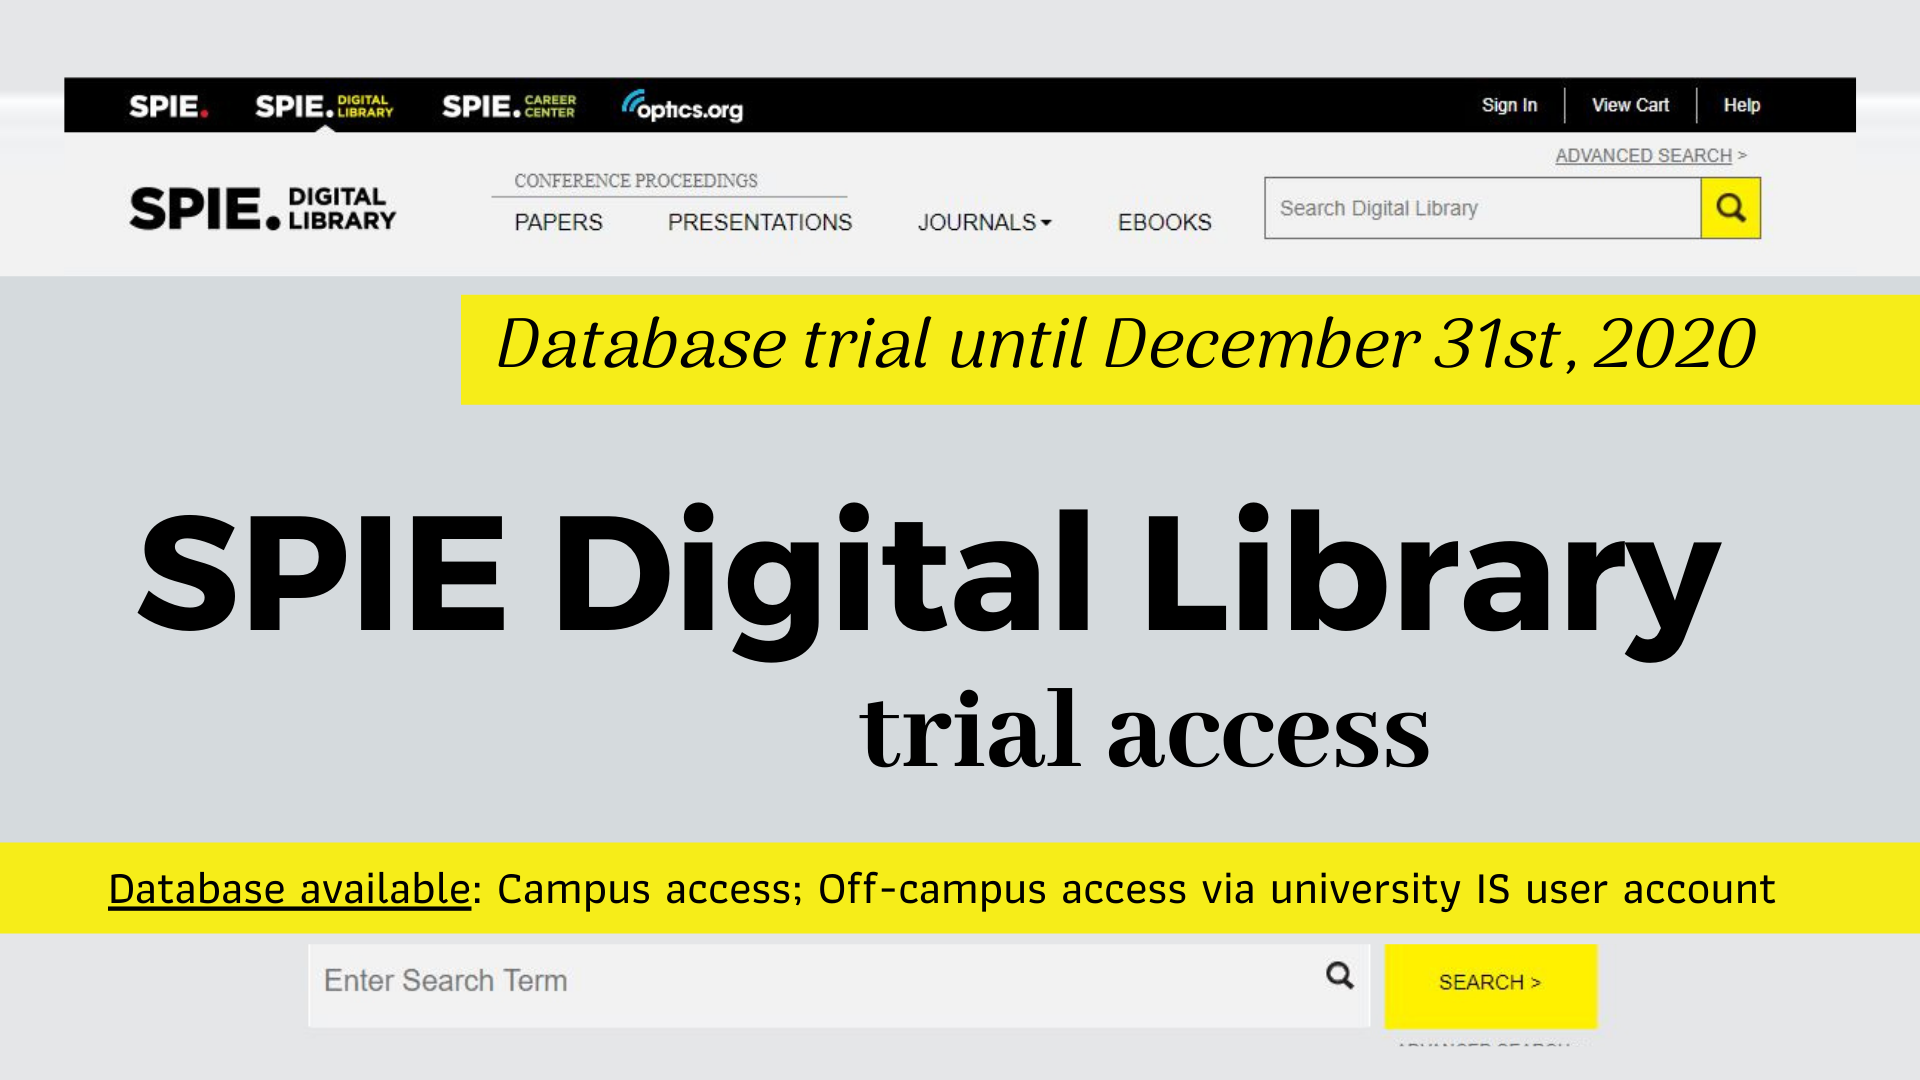 SPIE Digital Library trial access until December 31st, 2020  The SPIE Digital Library trial includes access to the world's largest collection of optics and photonics applied research:  473,000+ proceedings papers from SPIE conferences 29,000+ presentation recording videos of research presented at SPIE conferences 36,000+ journal papers from 11 SPIE journals 420+ eBooks Database available:  Off-campus access via university IS user account: https://ezproxy.llu.lv/login?url=https://www.spiedigitallibrary.org Campus access: https://spiedigitallibrary.org